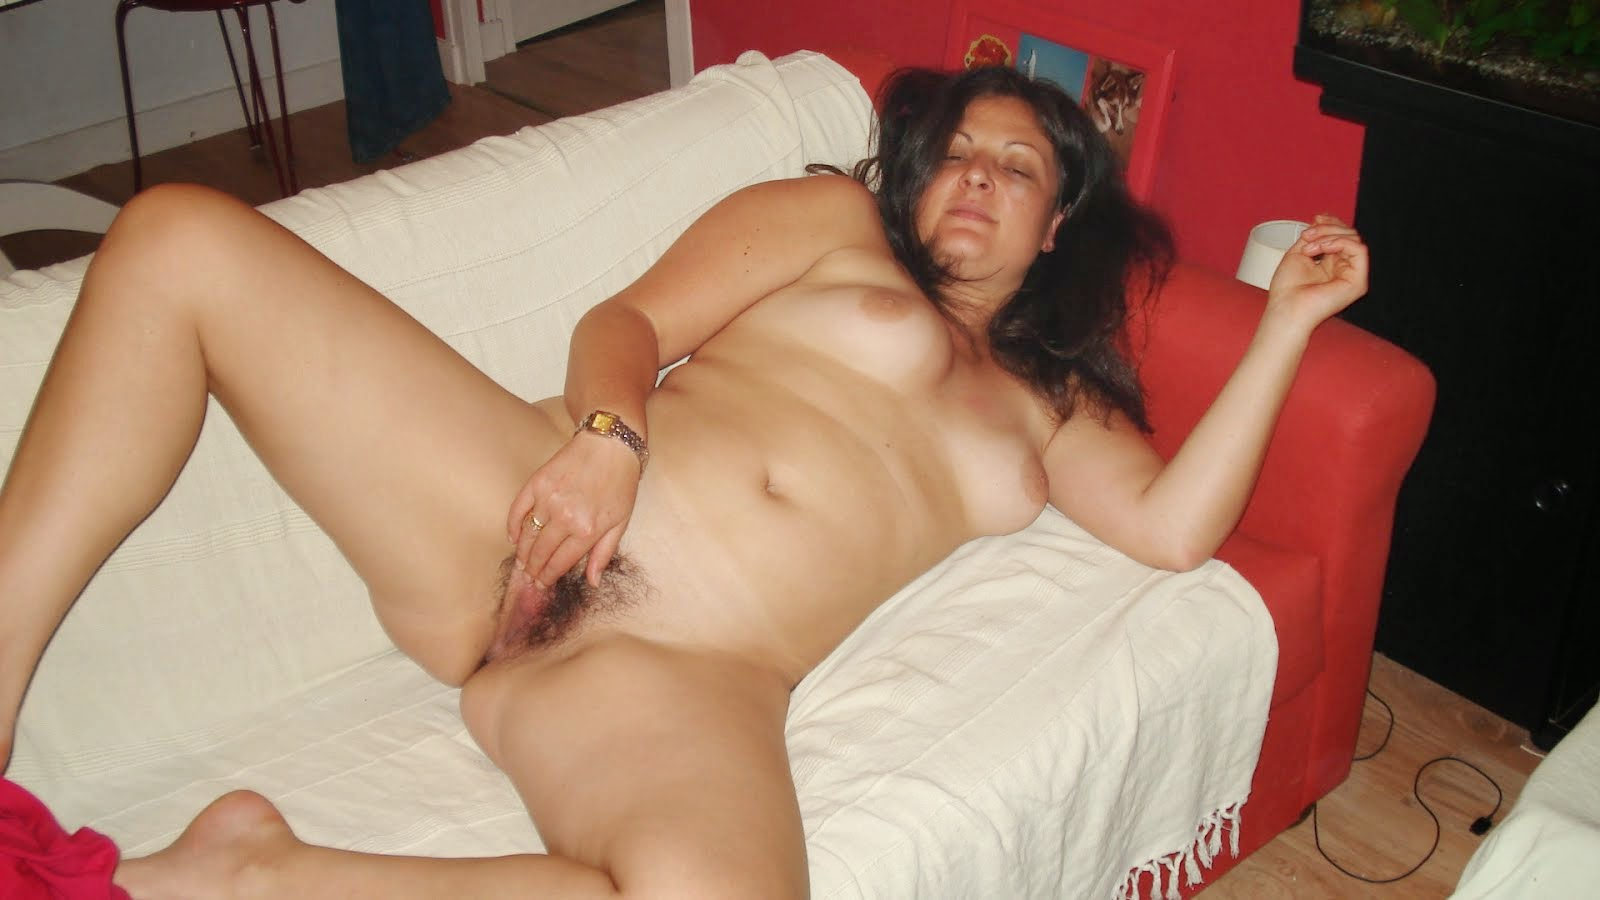 Authoritative Karala bighairy sex nude